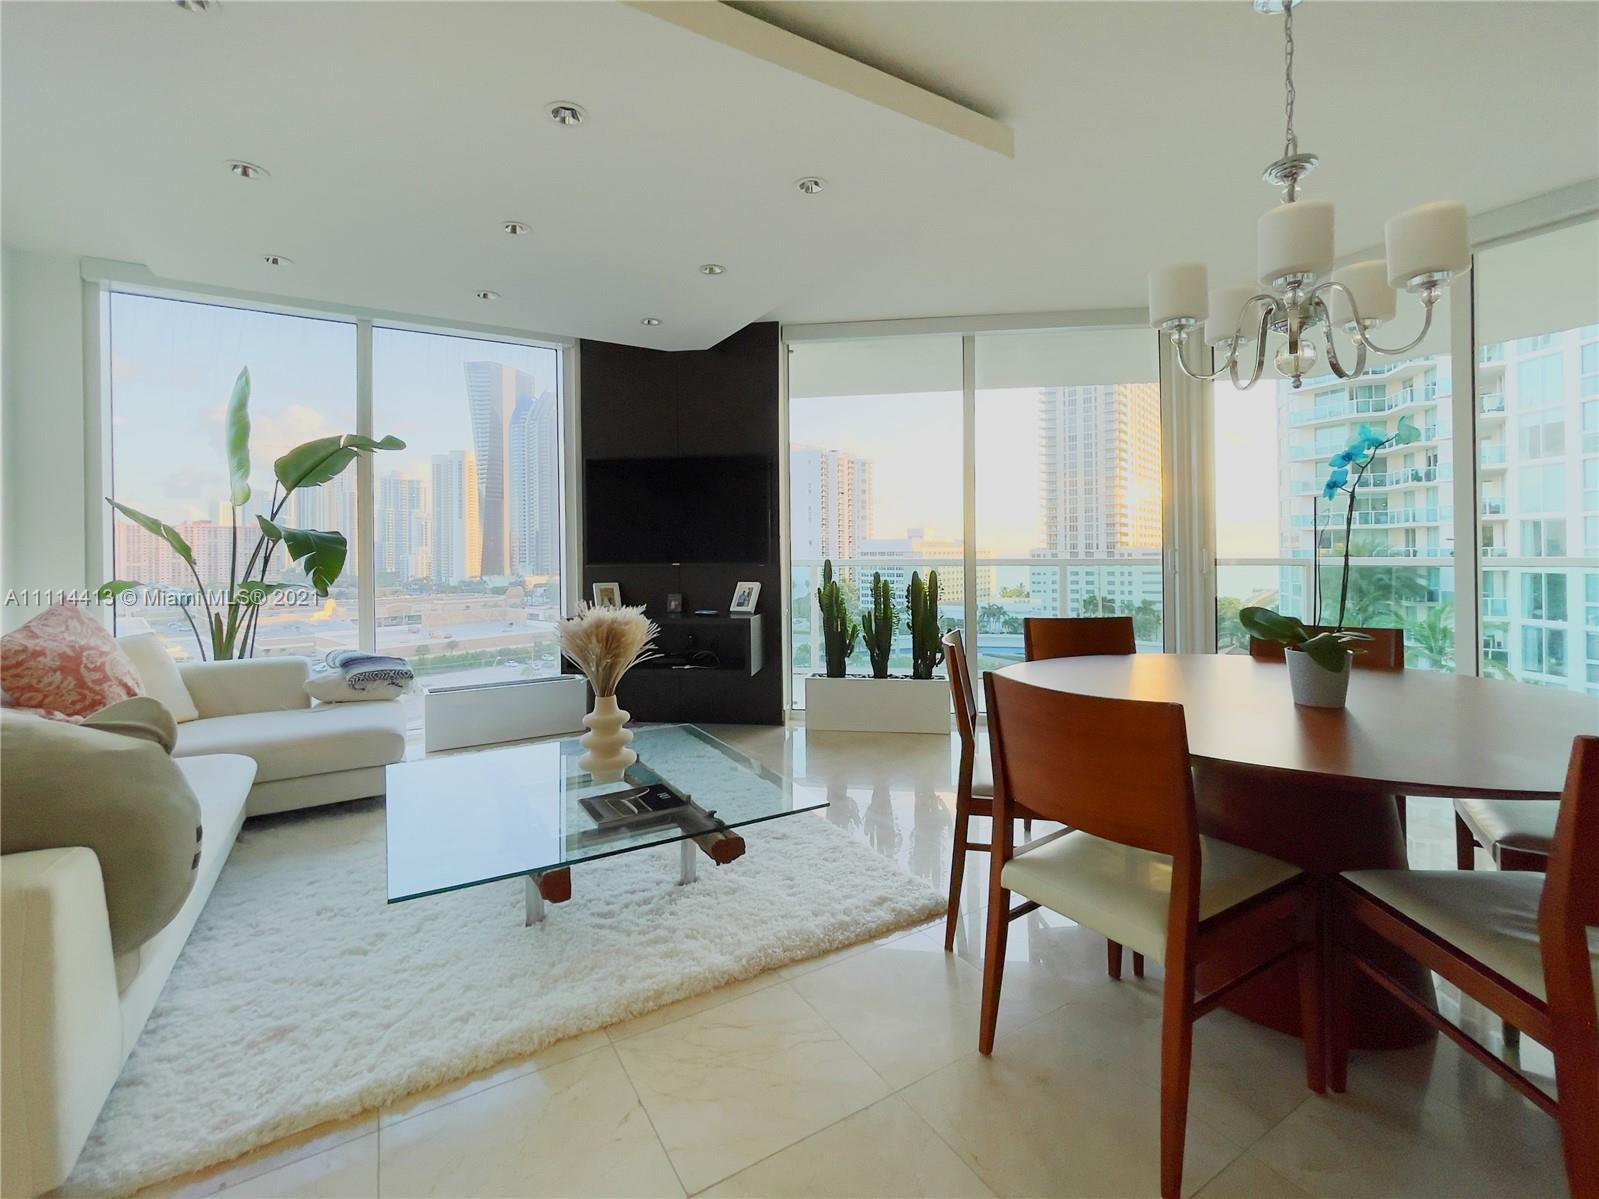 ST TROPEZ ON THE BAY II C Condo,For Rent,ST TROPEZ ON THE BAY II C Brickell,realty,broker,condos near me